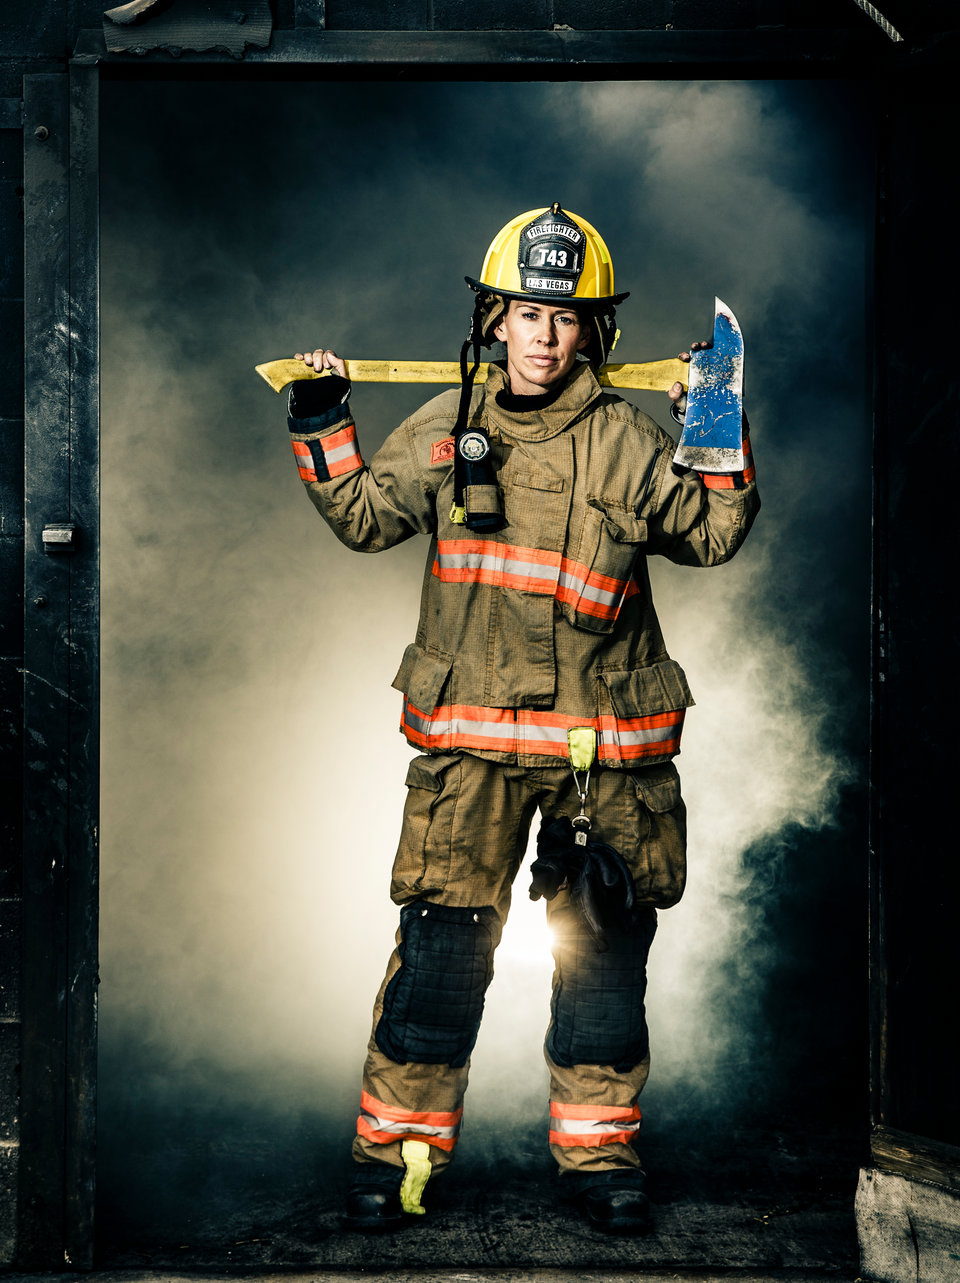 ... , Rescue and the Perils of a Female Firefighter | St. Thomas Newsroom